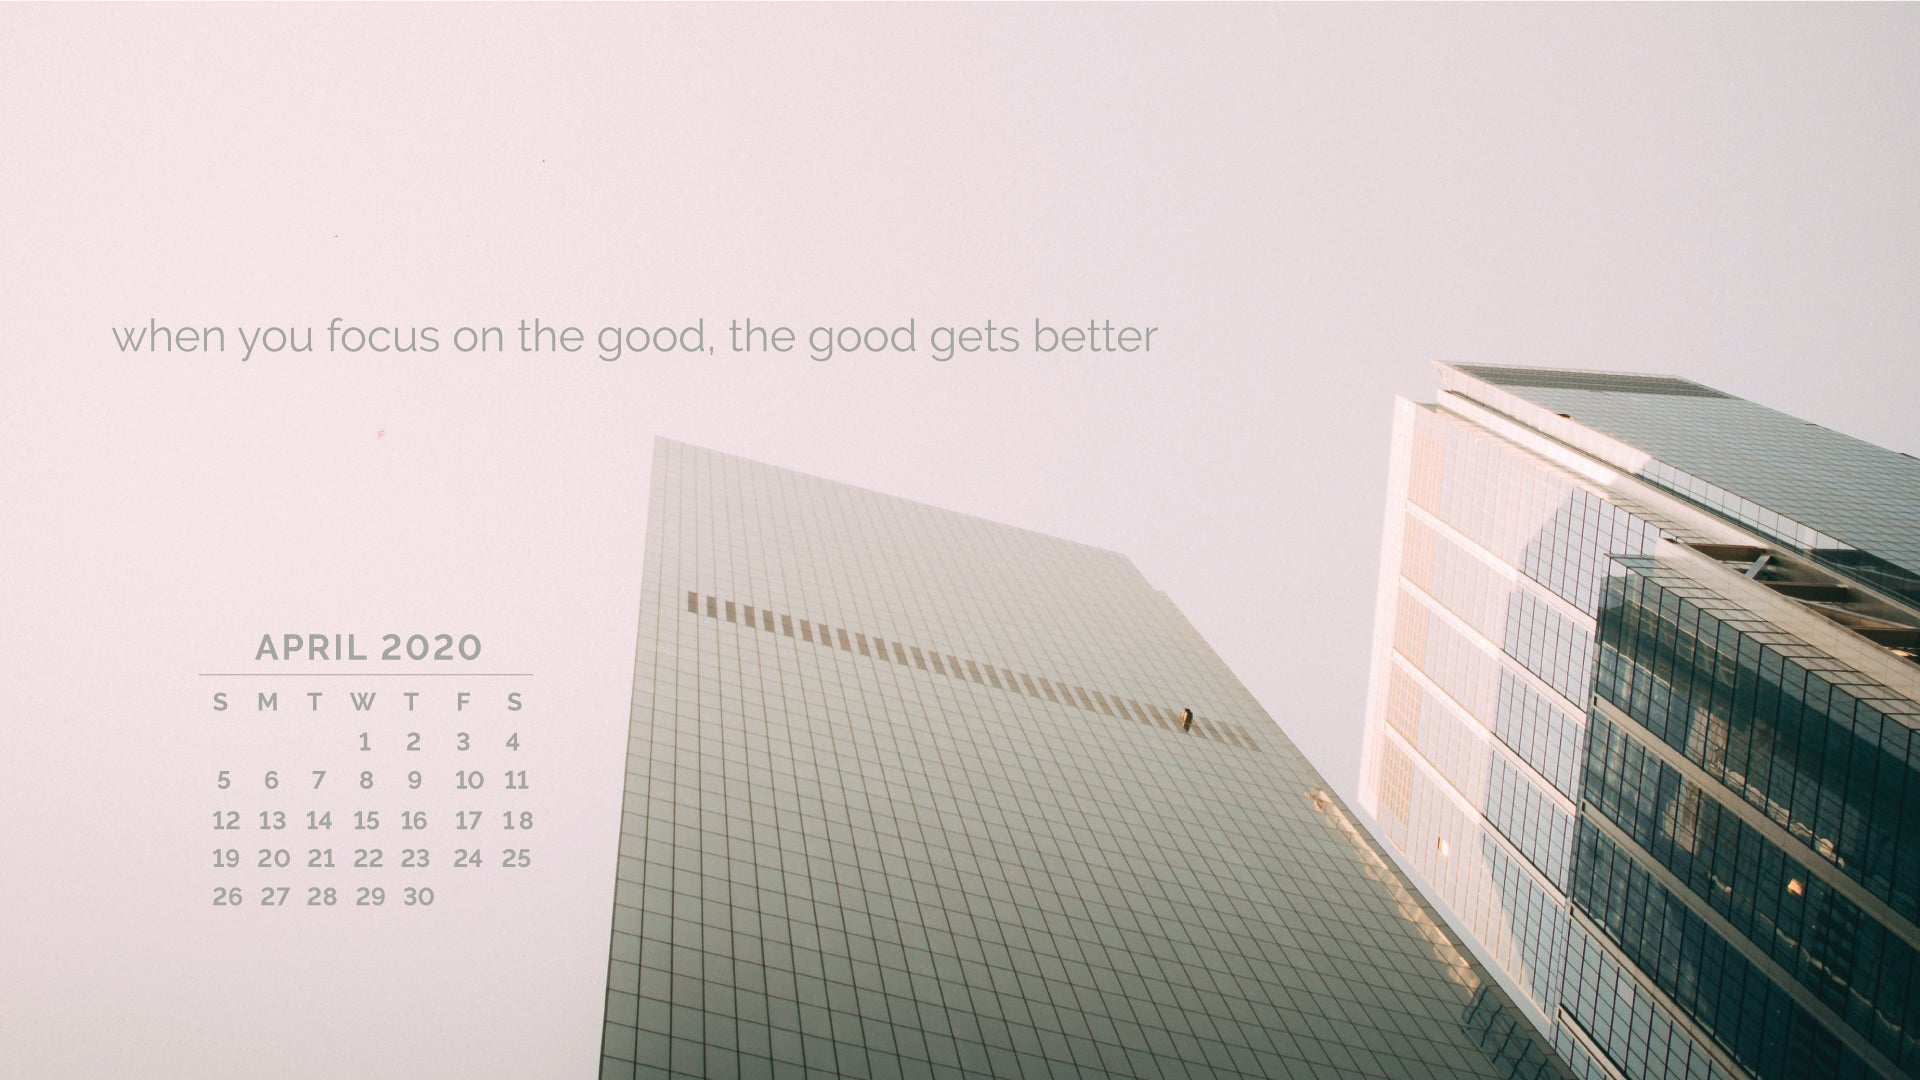 when you focus on the good, the good gets better. uplifting quotes desktop backgrounds with april 2020 calendar